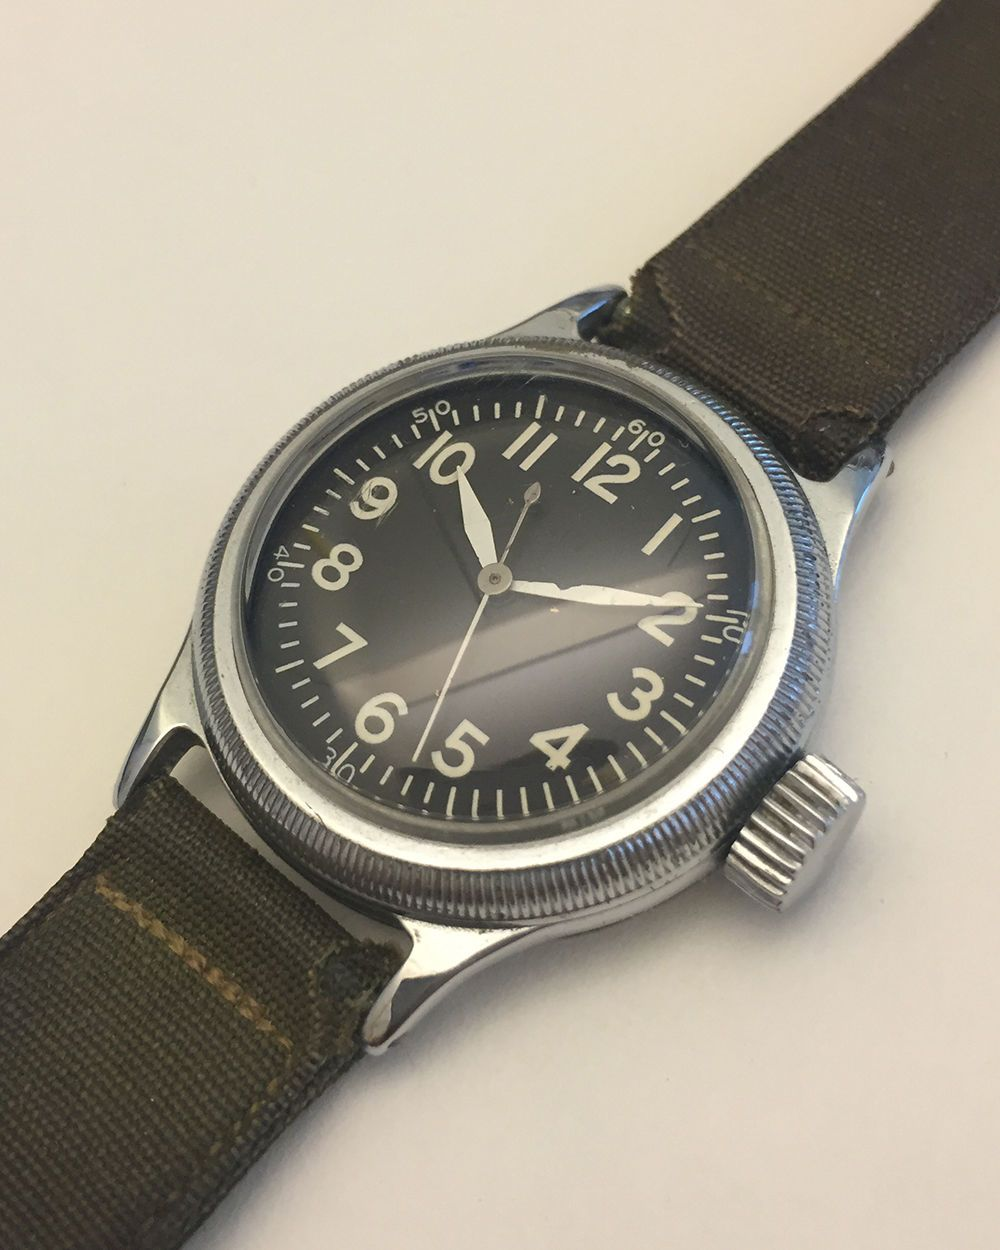 Vintage Elgin A11 Military Watch WWII Military